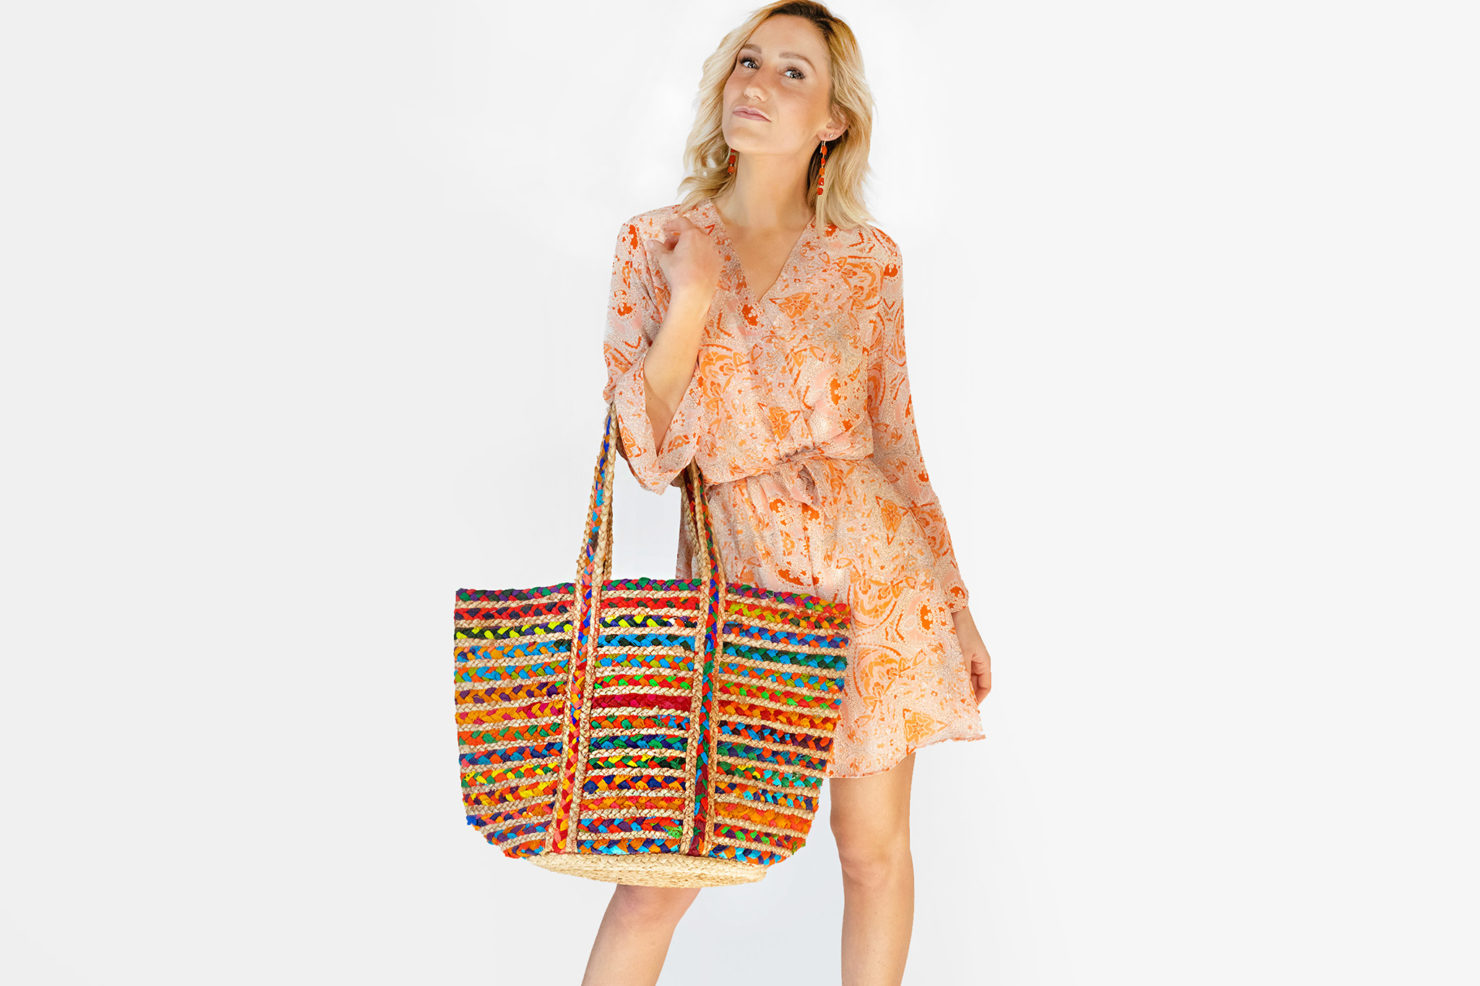 BAG JUTE MULTICOLOR-BY ROOM FT. MARGARET BLAME